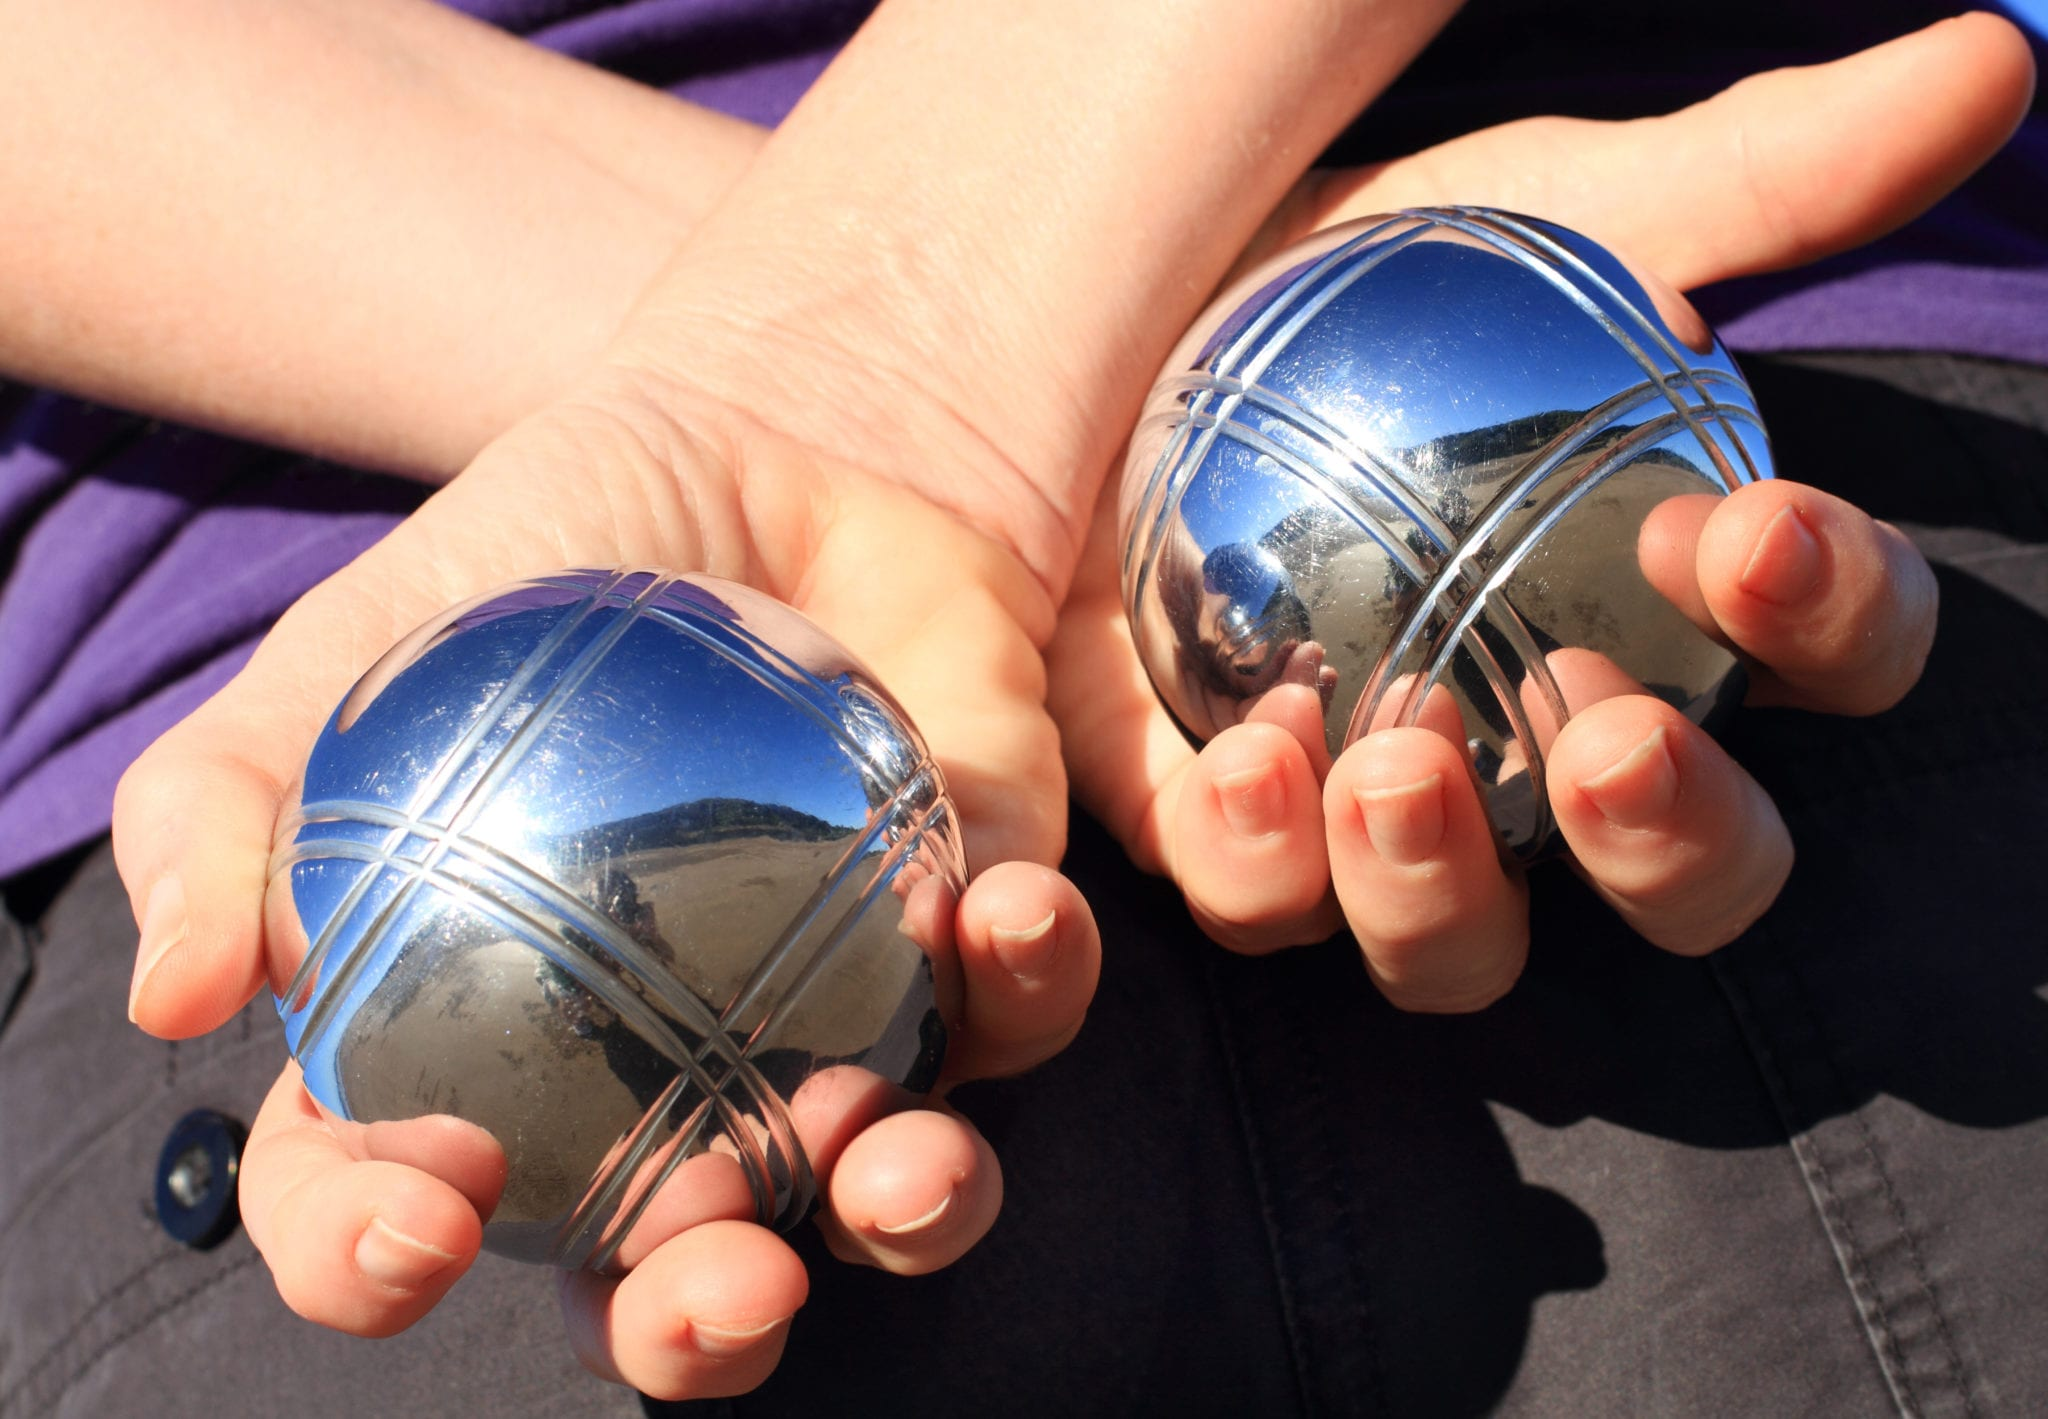 A woman holding two chrome boules behind her back.